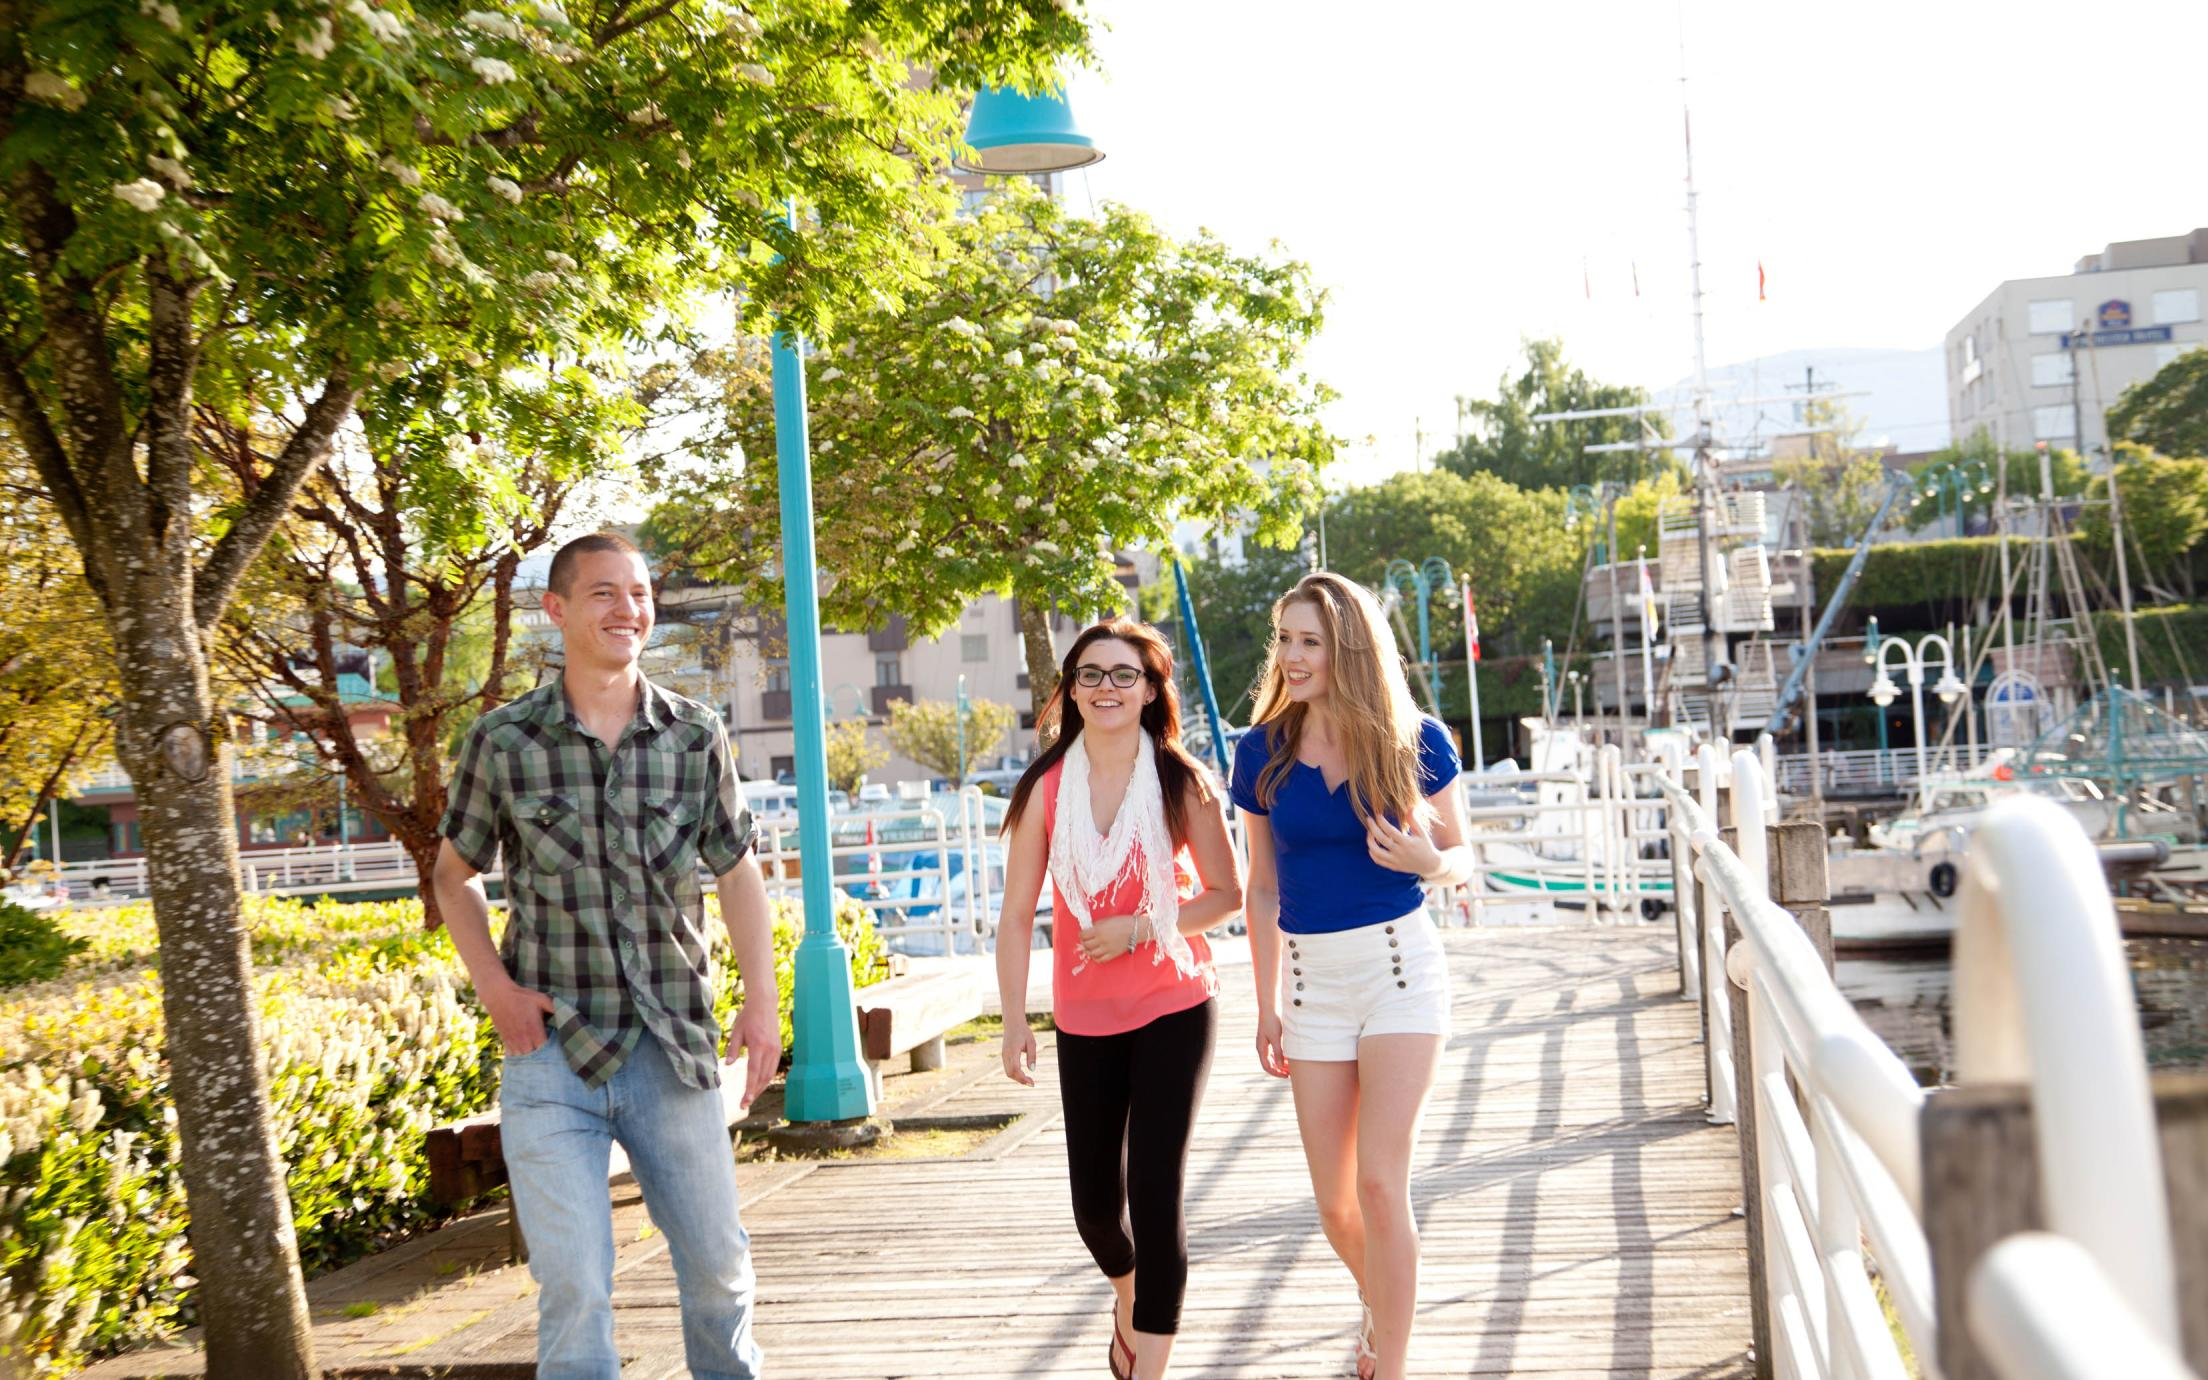 Students of the Exploratory University Studies (EXPO) program exploring downtown Nanaimo